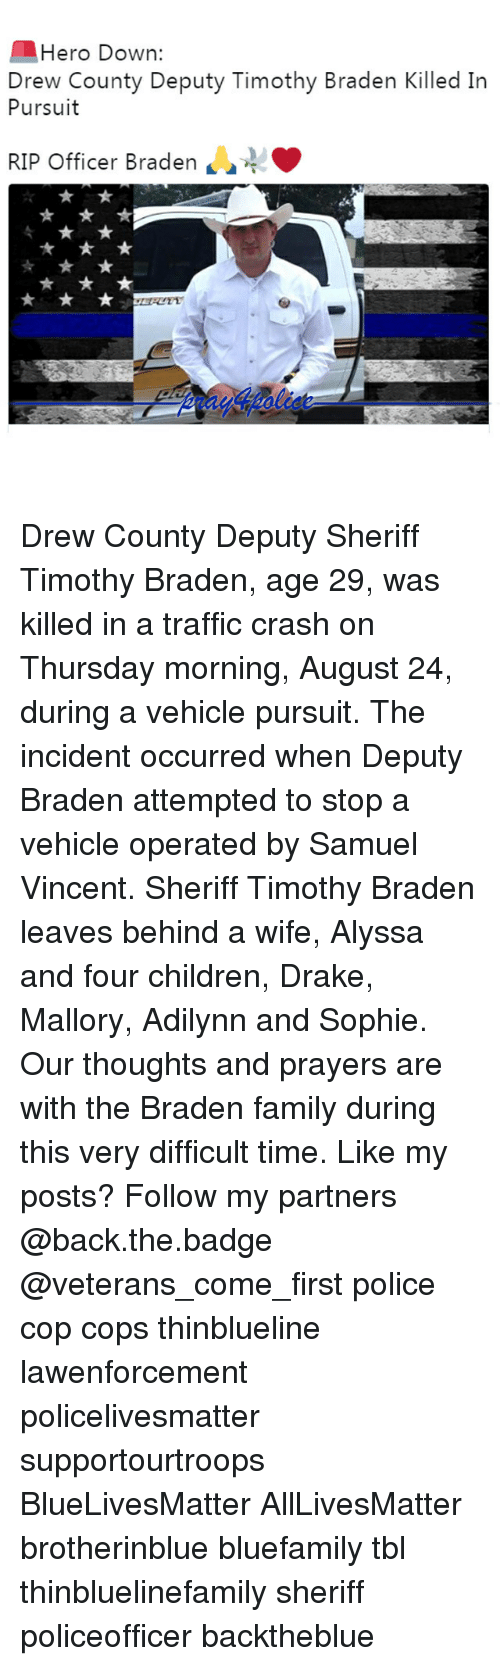 All Lives Matter, Children, and Drake: Hero Down:  Drew County Deputy Timothy Braden Killed In  Pursuit  RIP Officer Braden  4 Drew County Deputy Sheriff Timothy Braden, age 29, was killed in a traffic crash on Thursday morning, August 24, during a vehicle pursuit. The incident occurred when Deputy Braden attempted to stop a vehicle operated by Samuel Vincent. Sheriff Timothy Braden leaves behind a wife, Alyssa and four children, Drake, Mallory, Adilynn and Sophie. Our thoughts and prayers are with the Braden family during this very difficult time. Like my posts? Follow my partners @back.the.badge @veterans_сome_first police cop cops thinblueline lawenforcement policelivesmatter supportourtroops BlueLivesMatter AllLivesMatter brotherinblue bluefamily tbl thinbluelinefamily sheriff policeofficer backtheblue